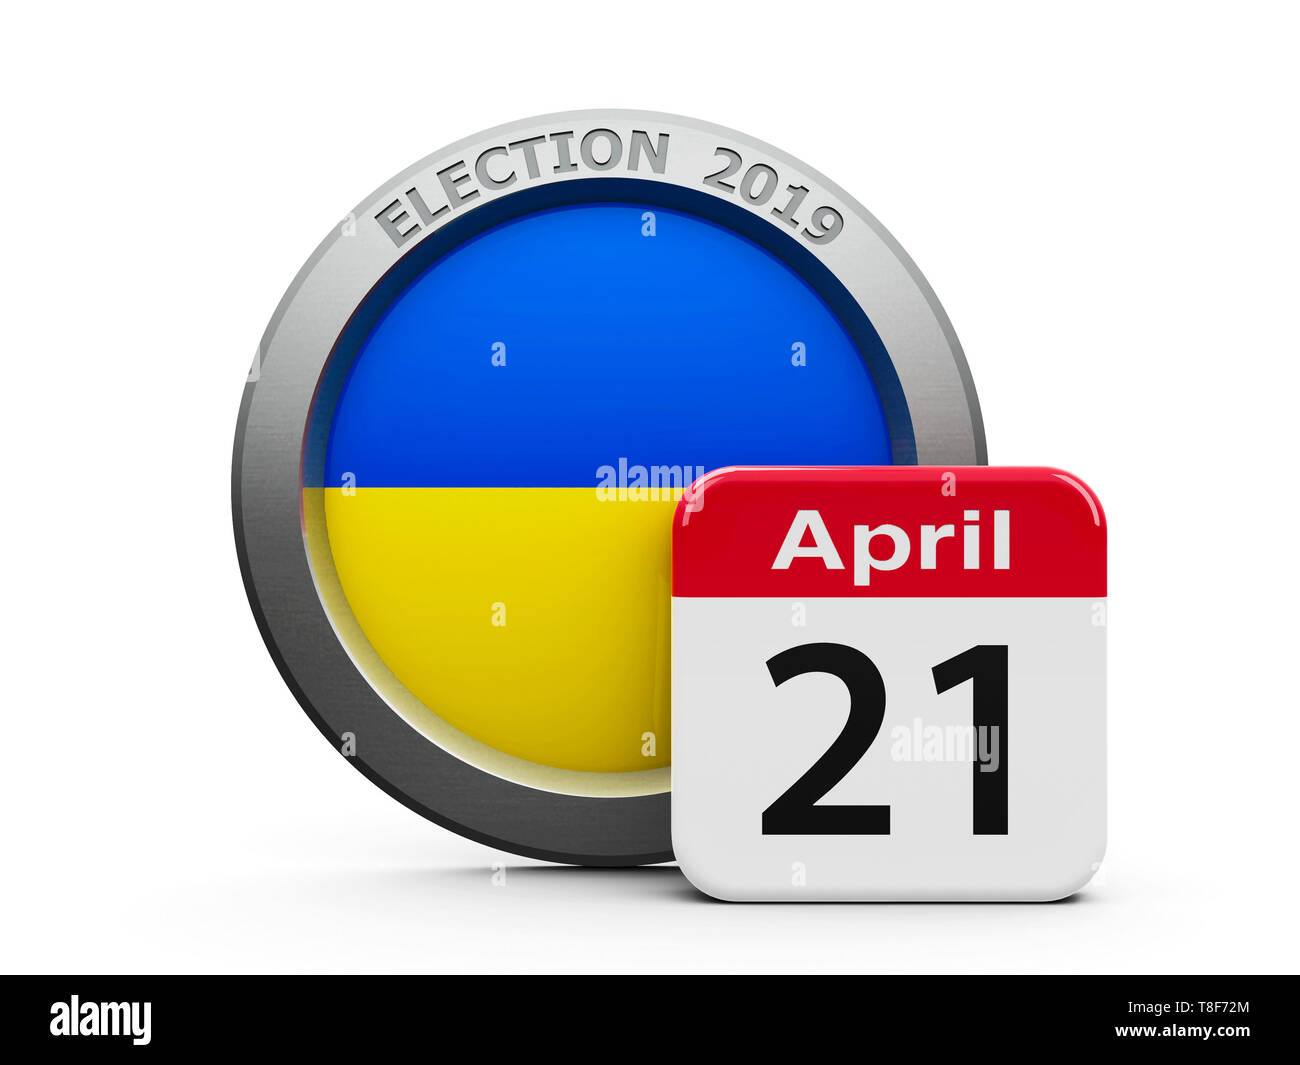 Emblem of Ukraine with calendar button - The Twenty First of April - represents the Election Day 2019 in Ukraine, three-dimensional rendering, 3D illu - Stock Image